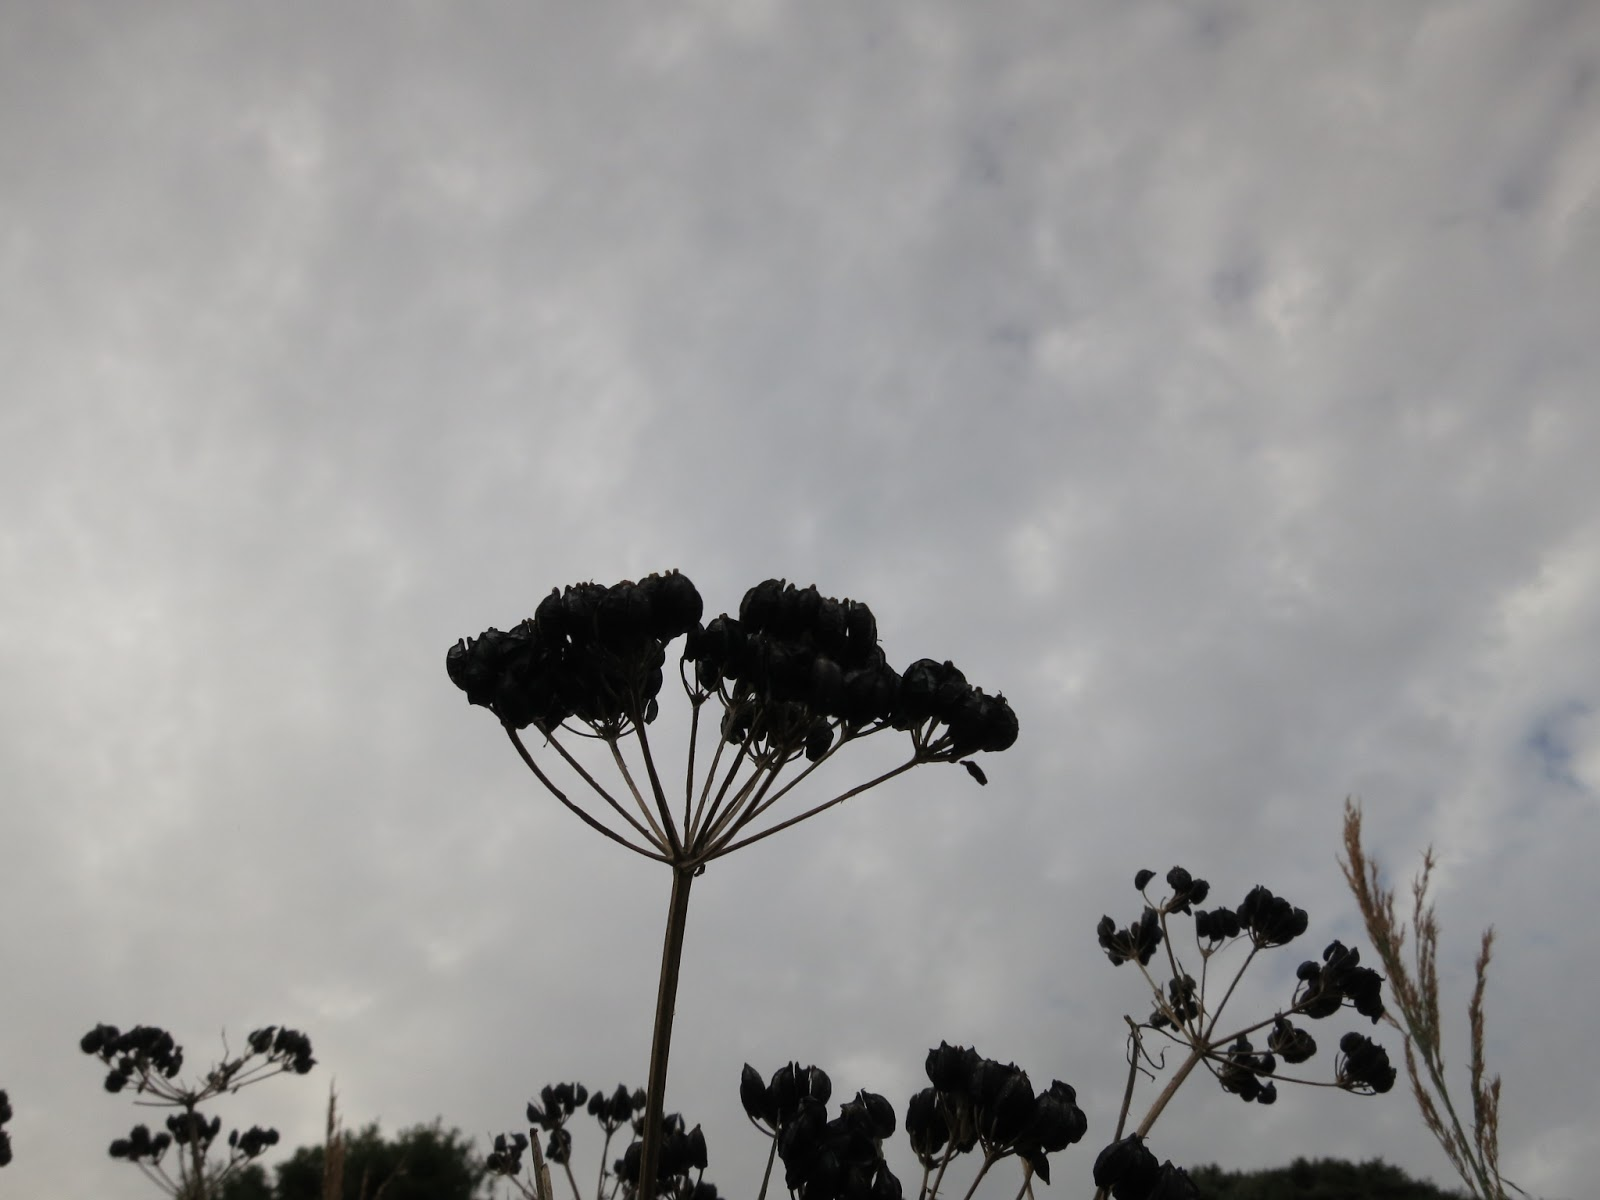 (Alexanders ?) Seeds on its head against a grey sky.